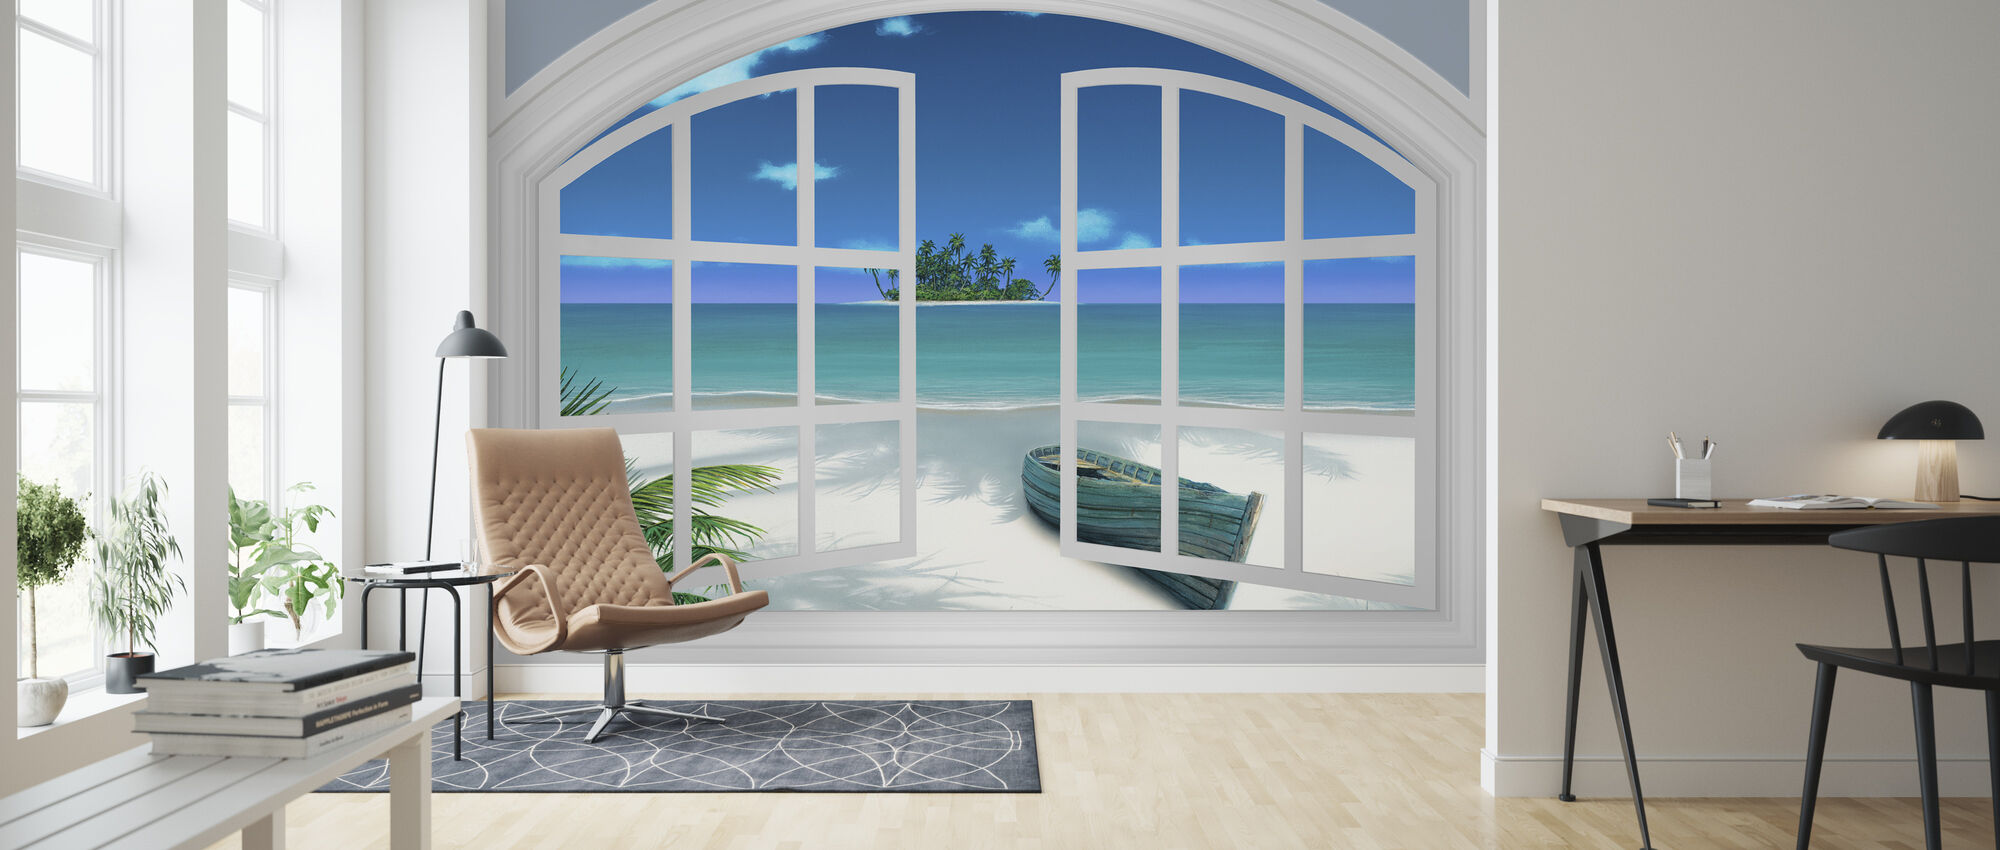 Beach View Through Window - Wallpaper - Living Room